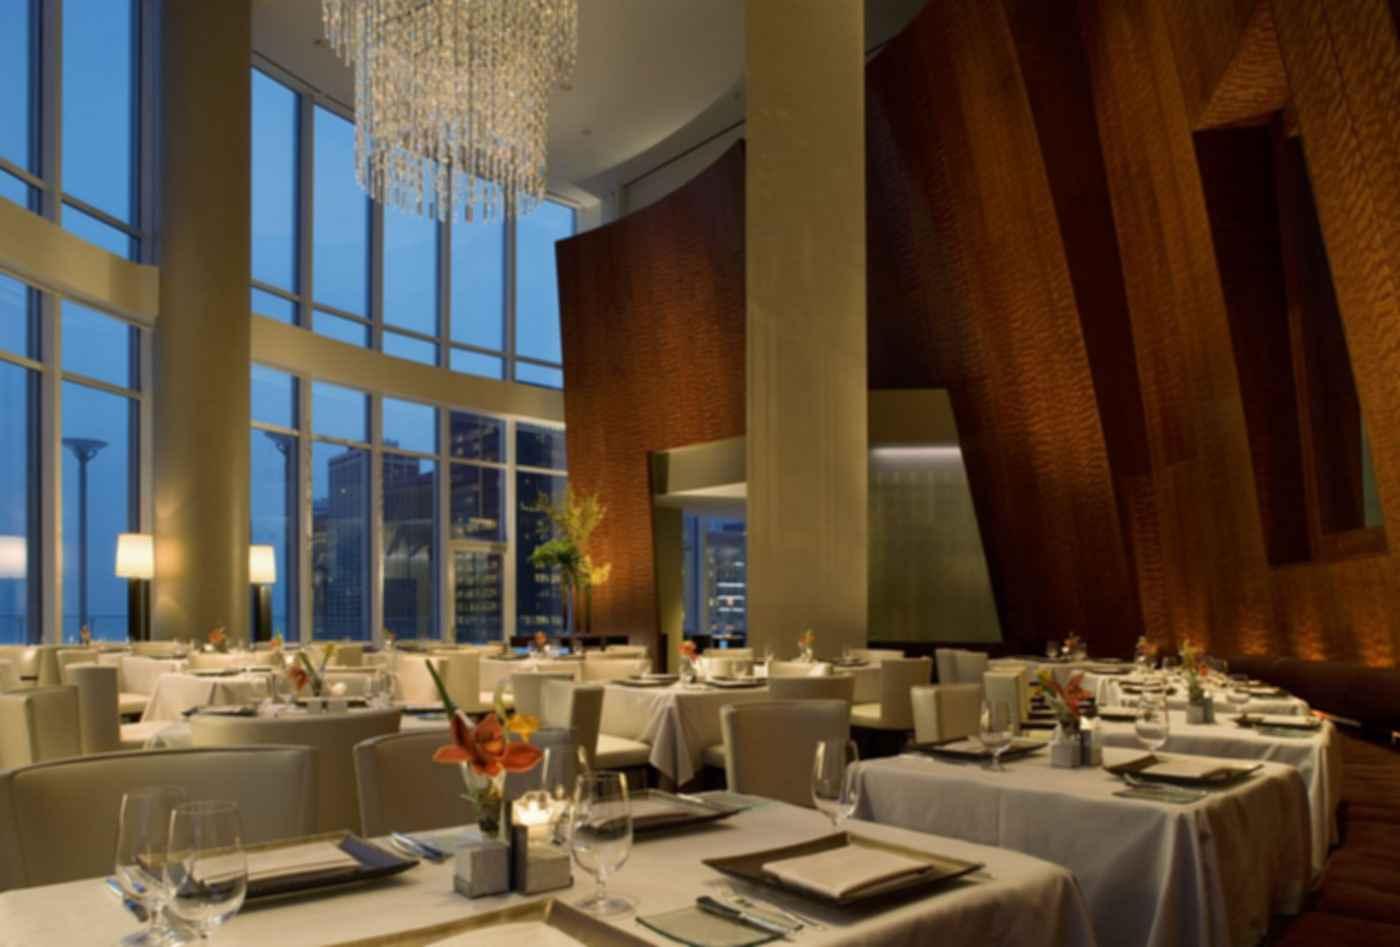 Trump International Hotel and Tower, Chicago - Interior/Dining Room